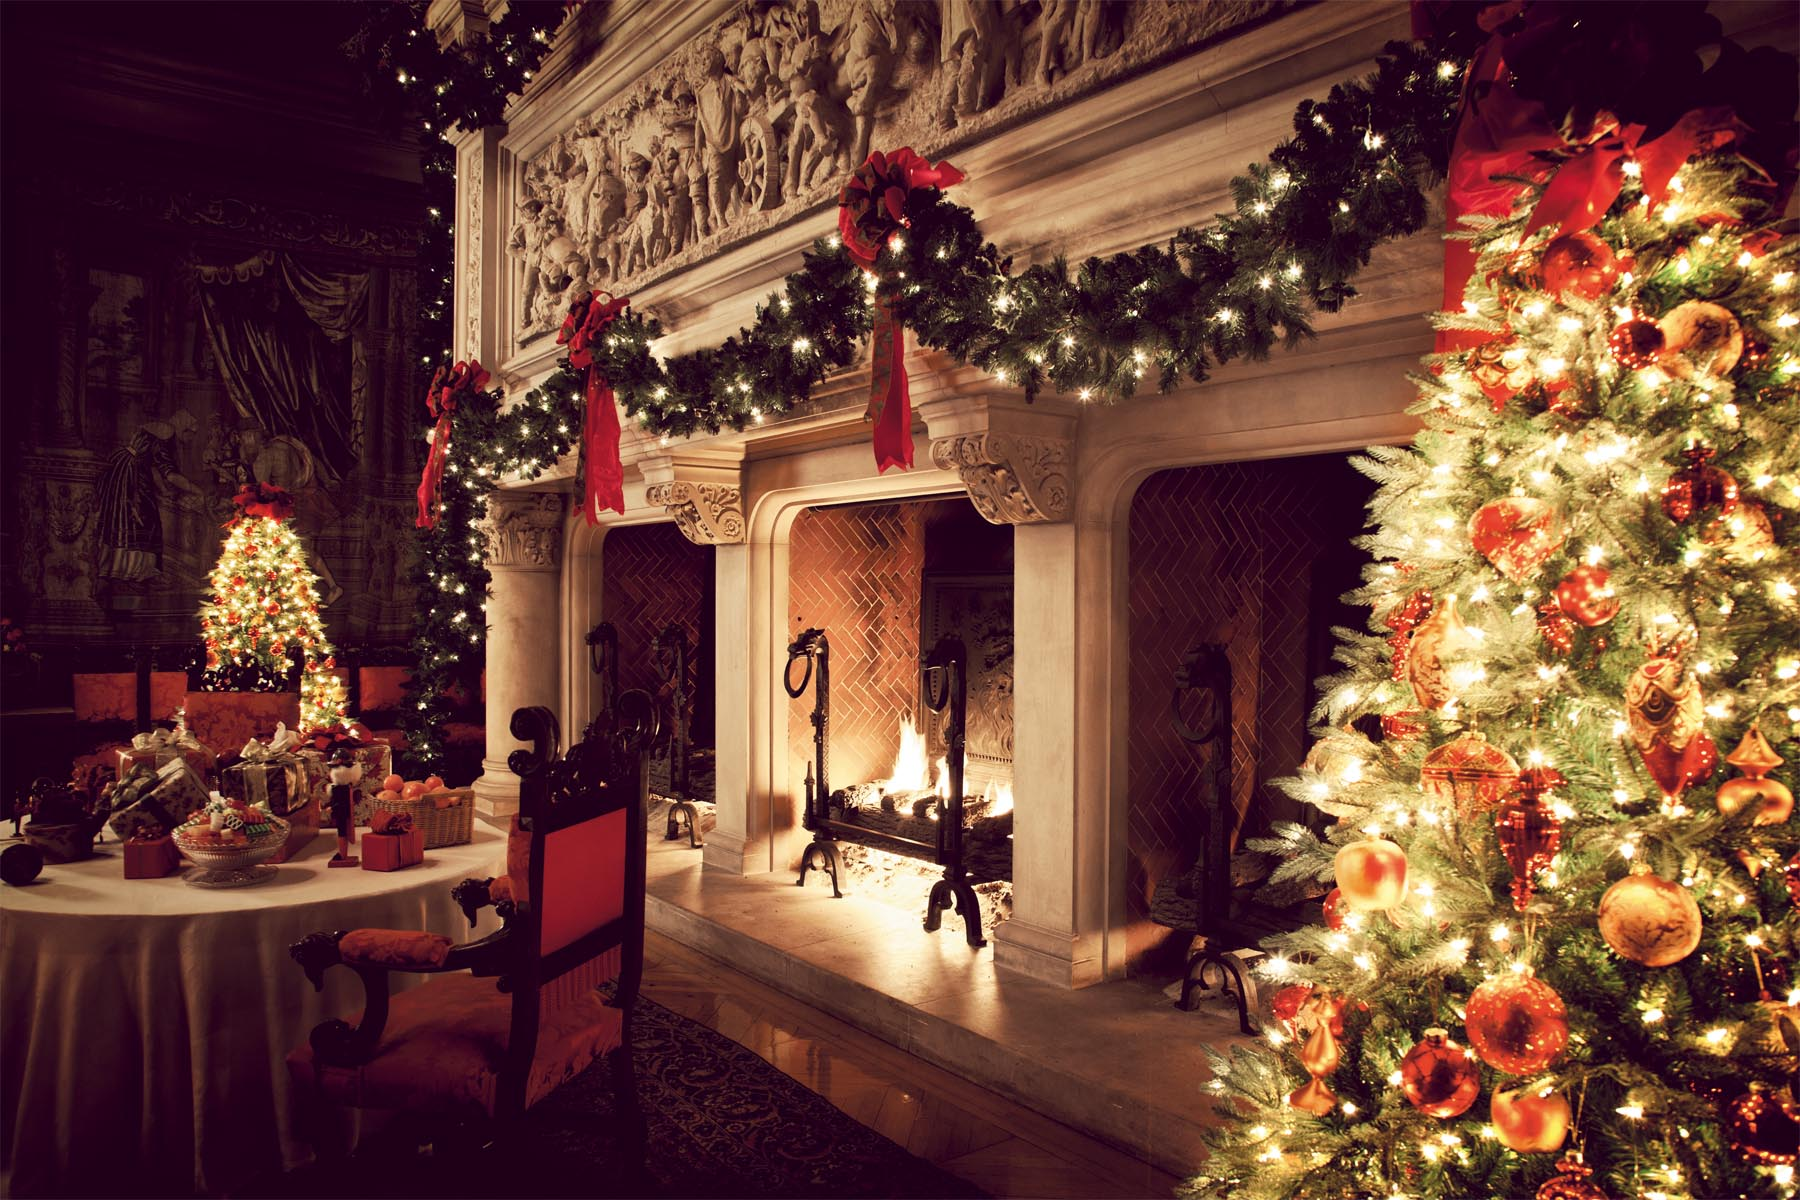 Christmas Fireplace Wallpaper Christmas Fireplace Fire Holiday Festive Decorations J Wallpaper